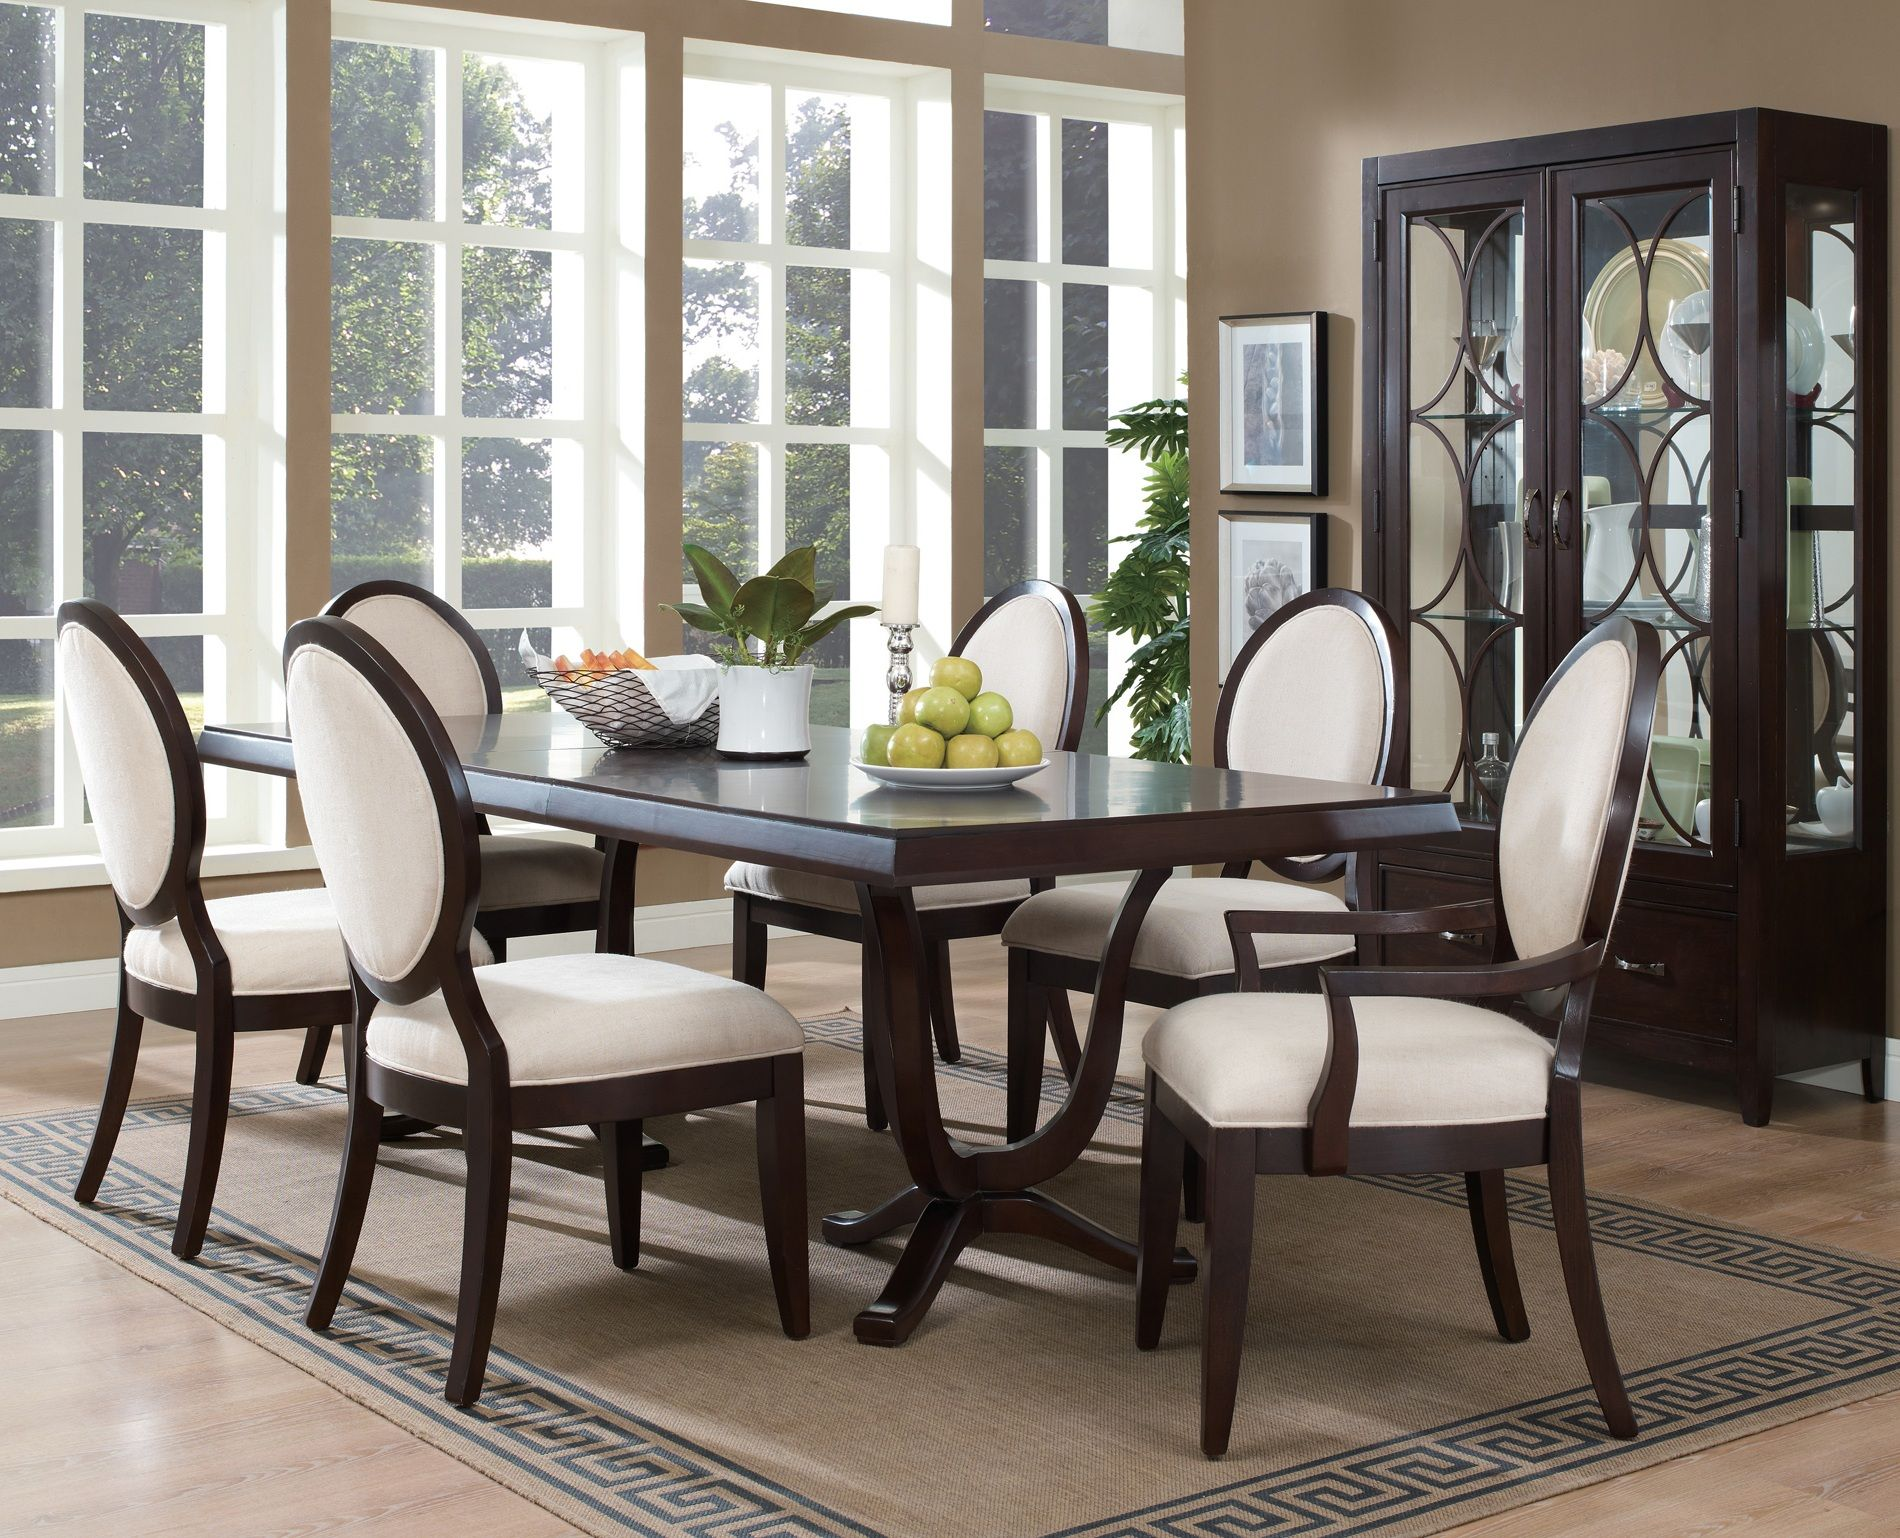 Décor for Formal Dining Room Designs | Room, Wooden dining tables ...